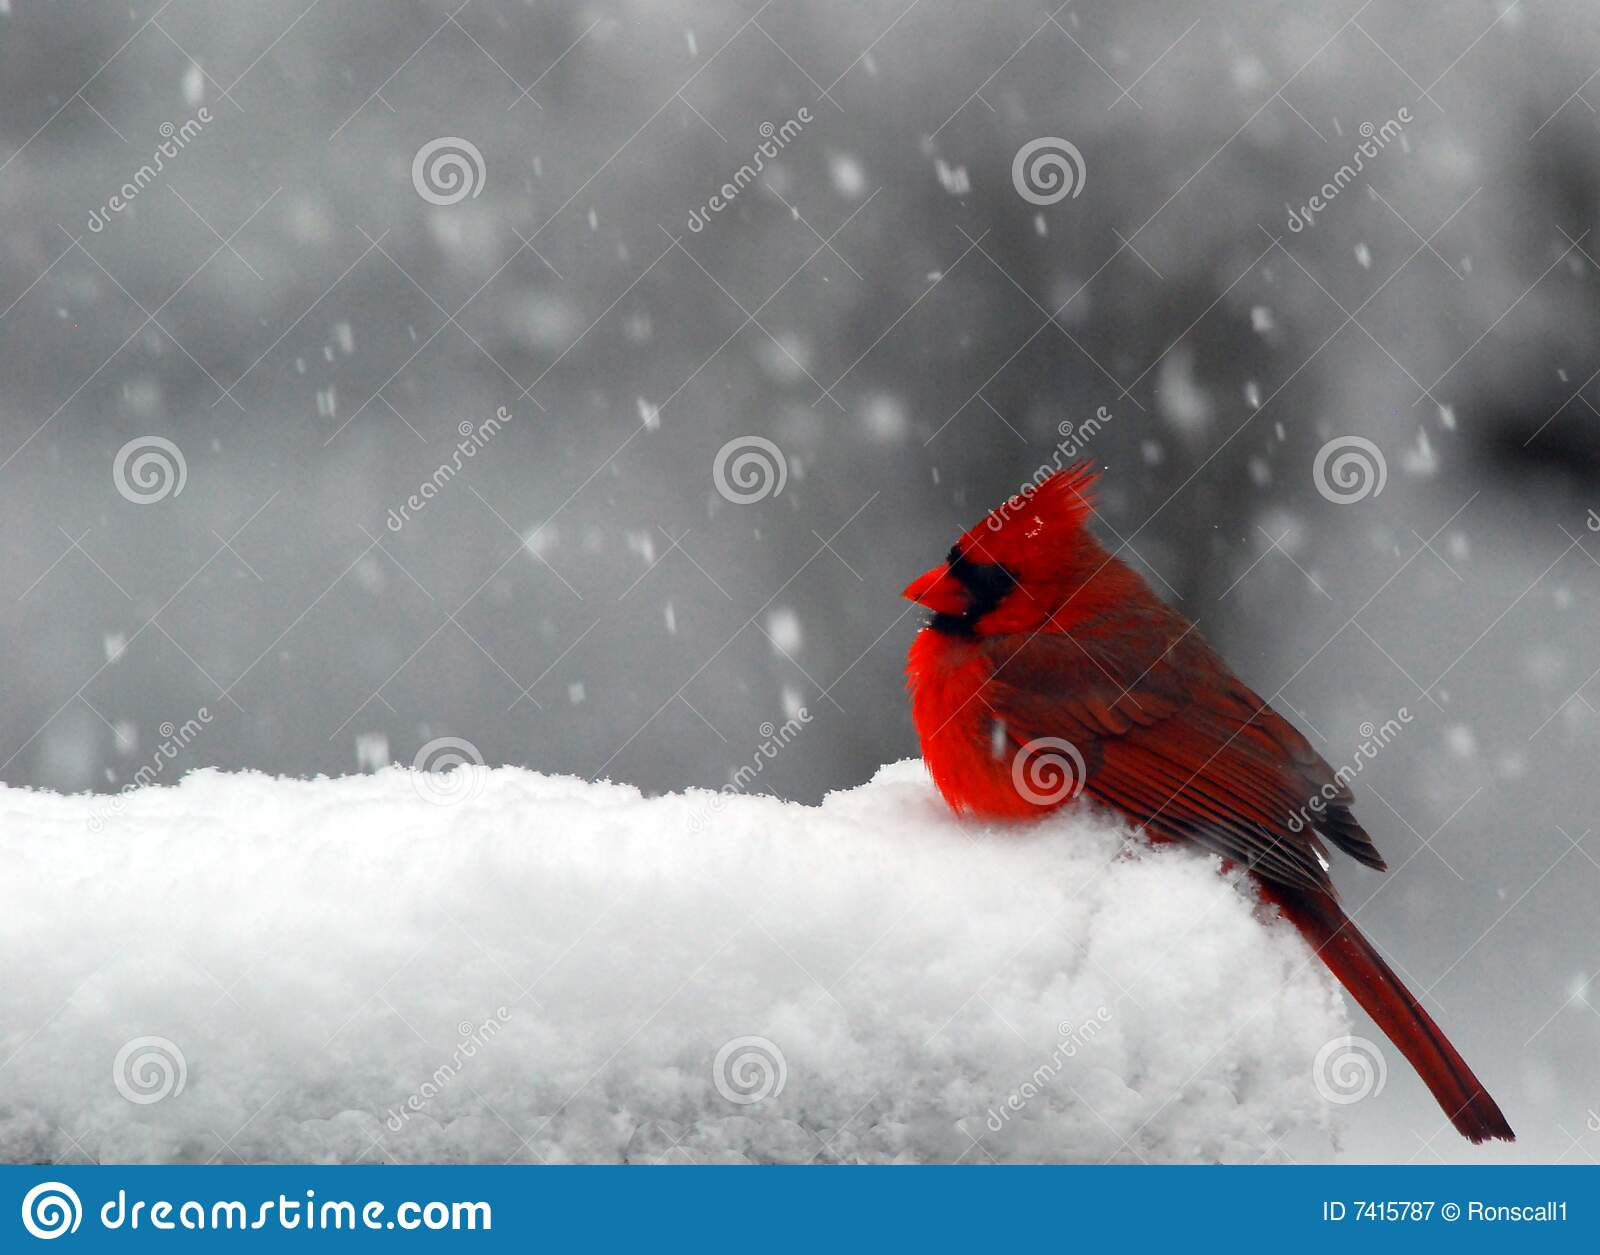 cardinal in snow stock image image of freezing snow 7415787